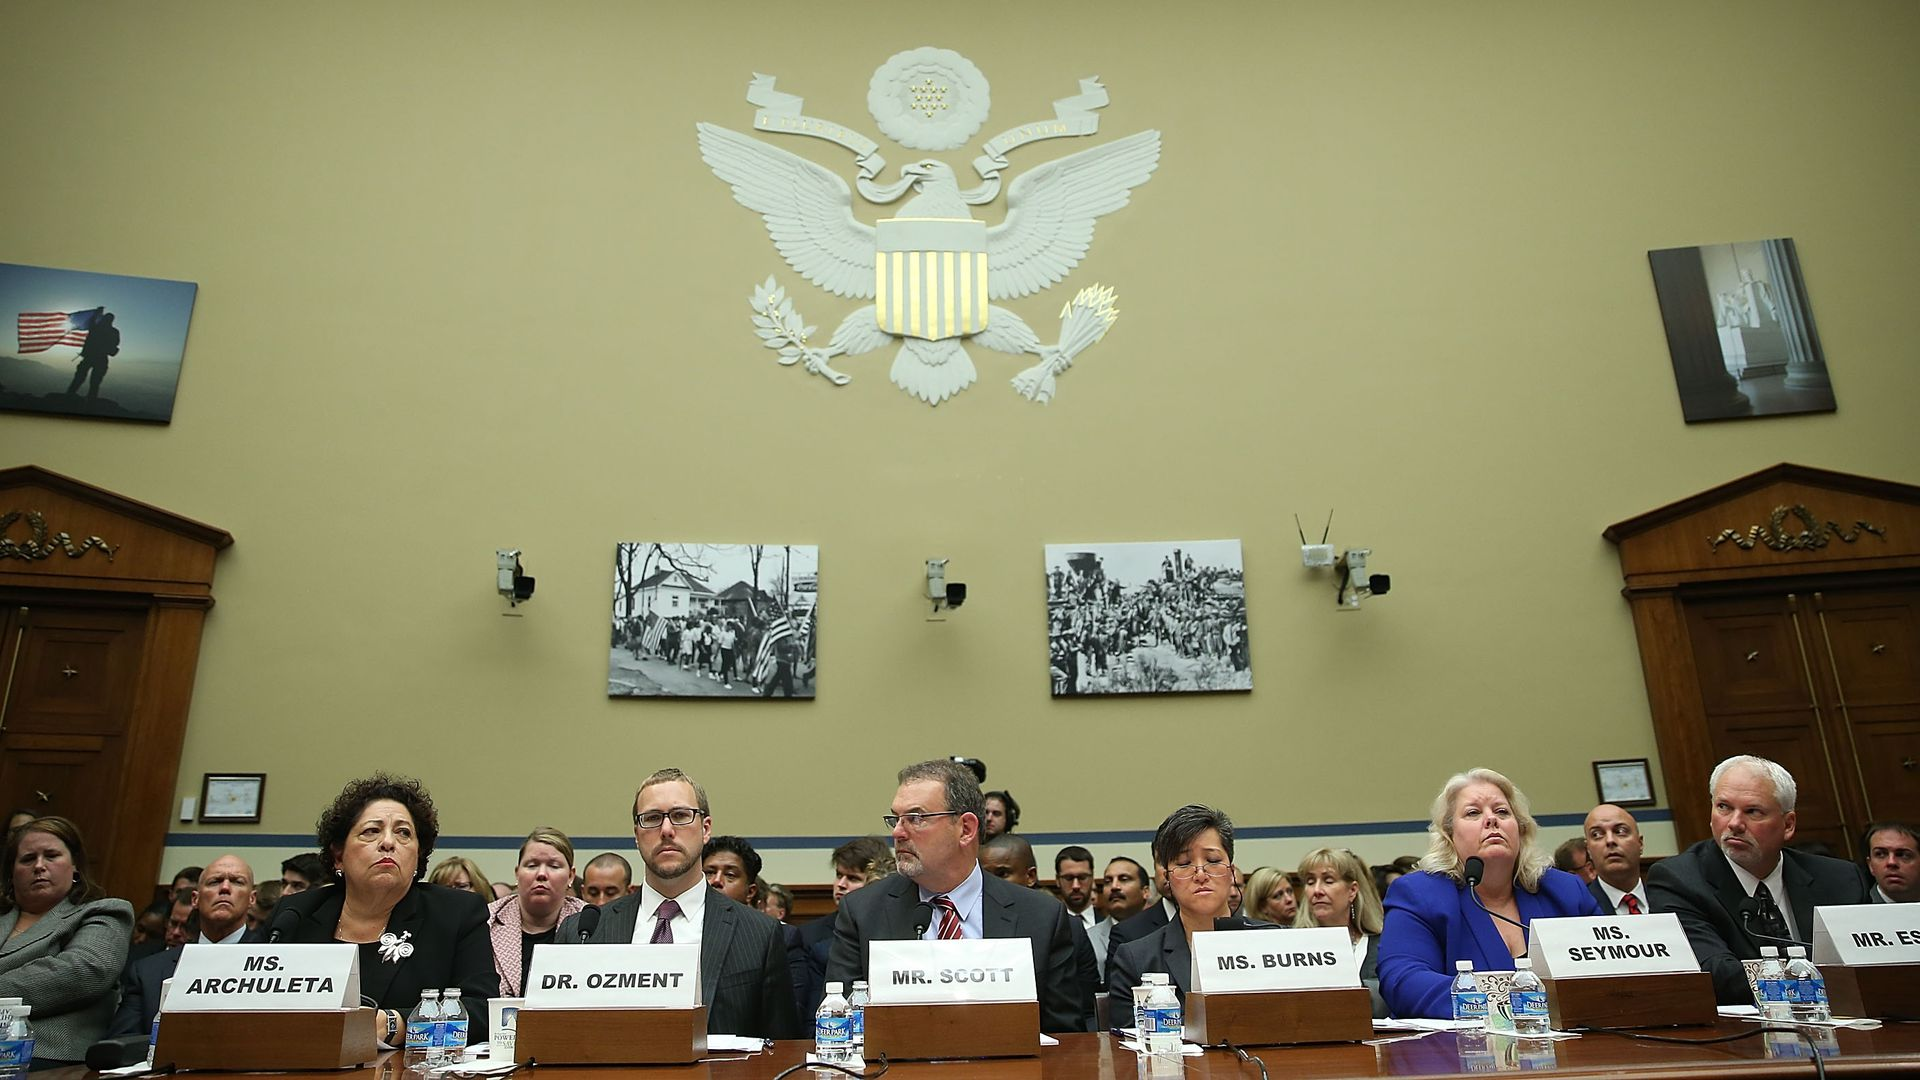 The OPM breach hearings in 2015